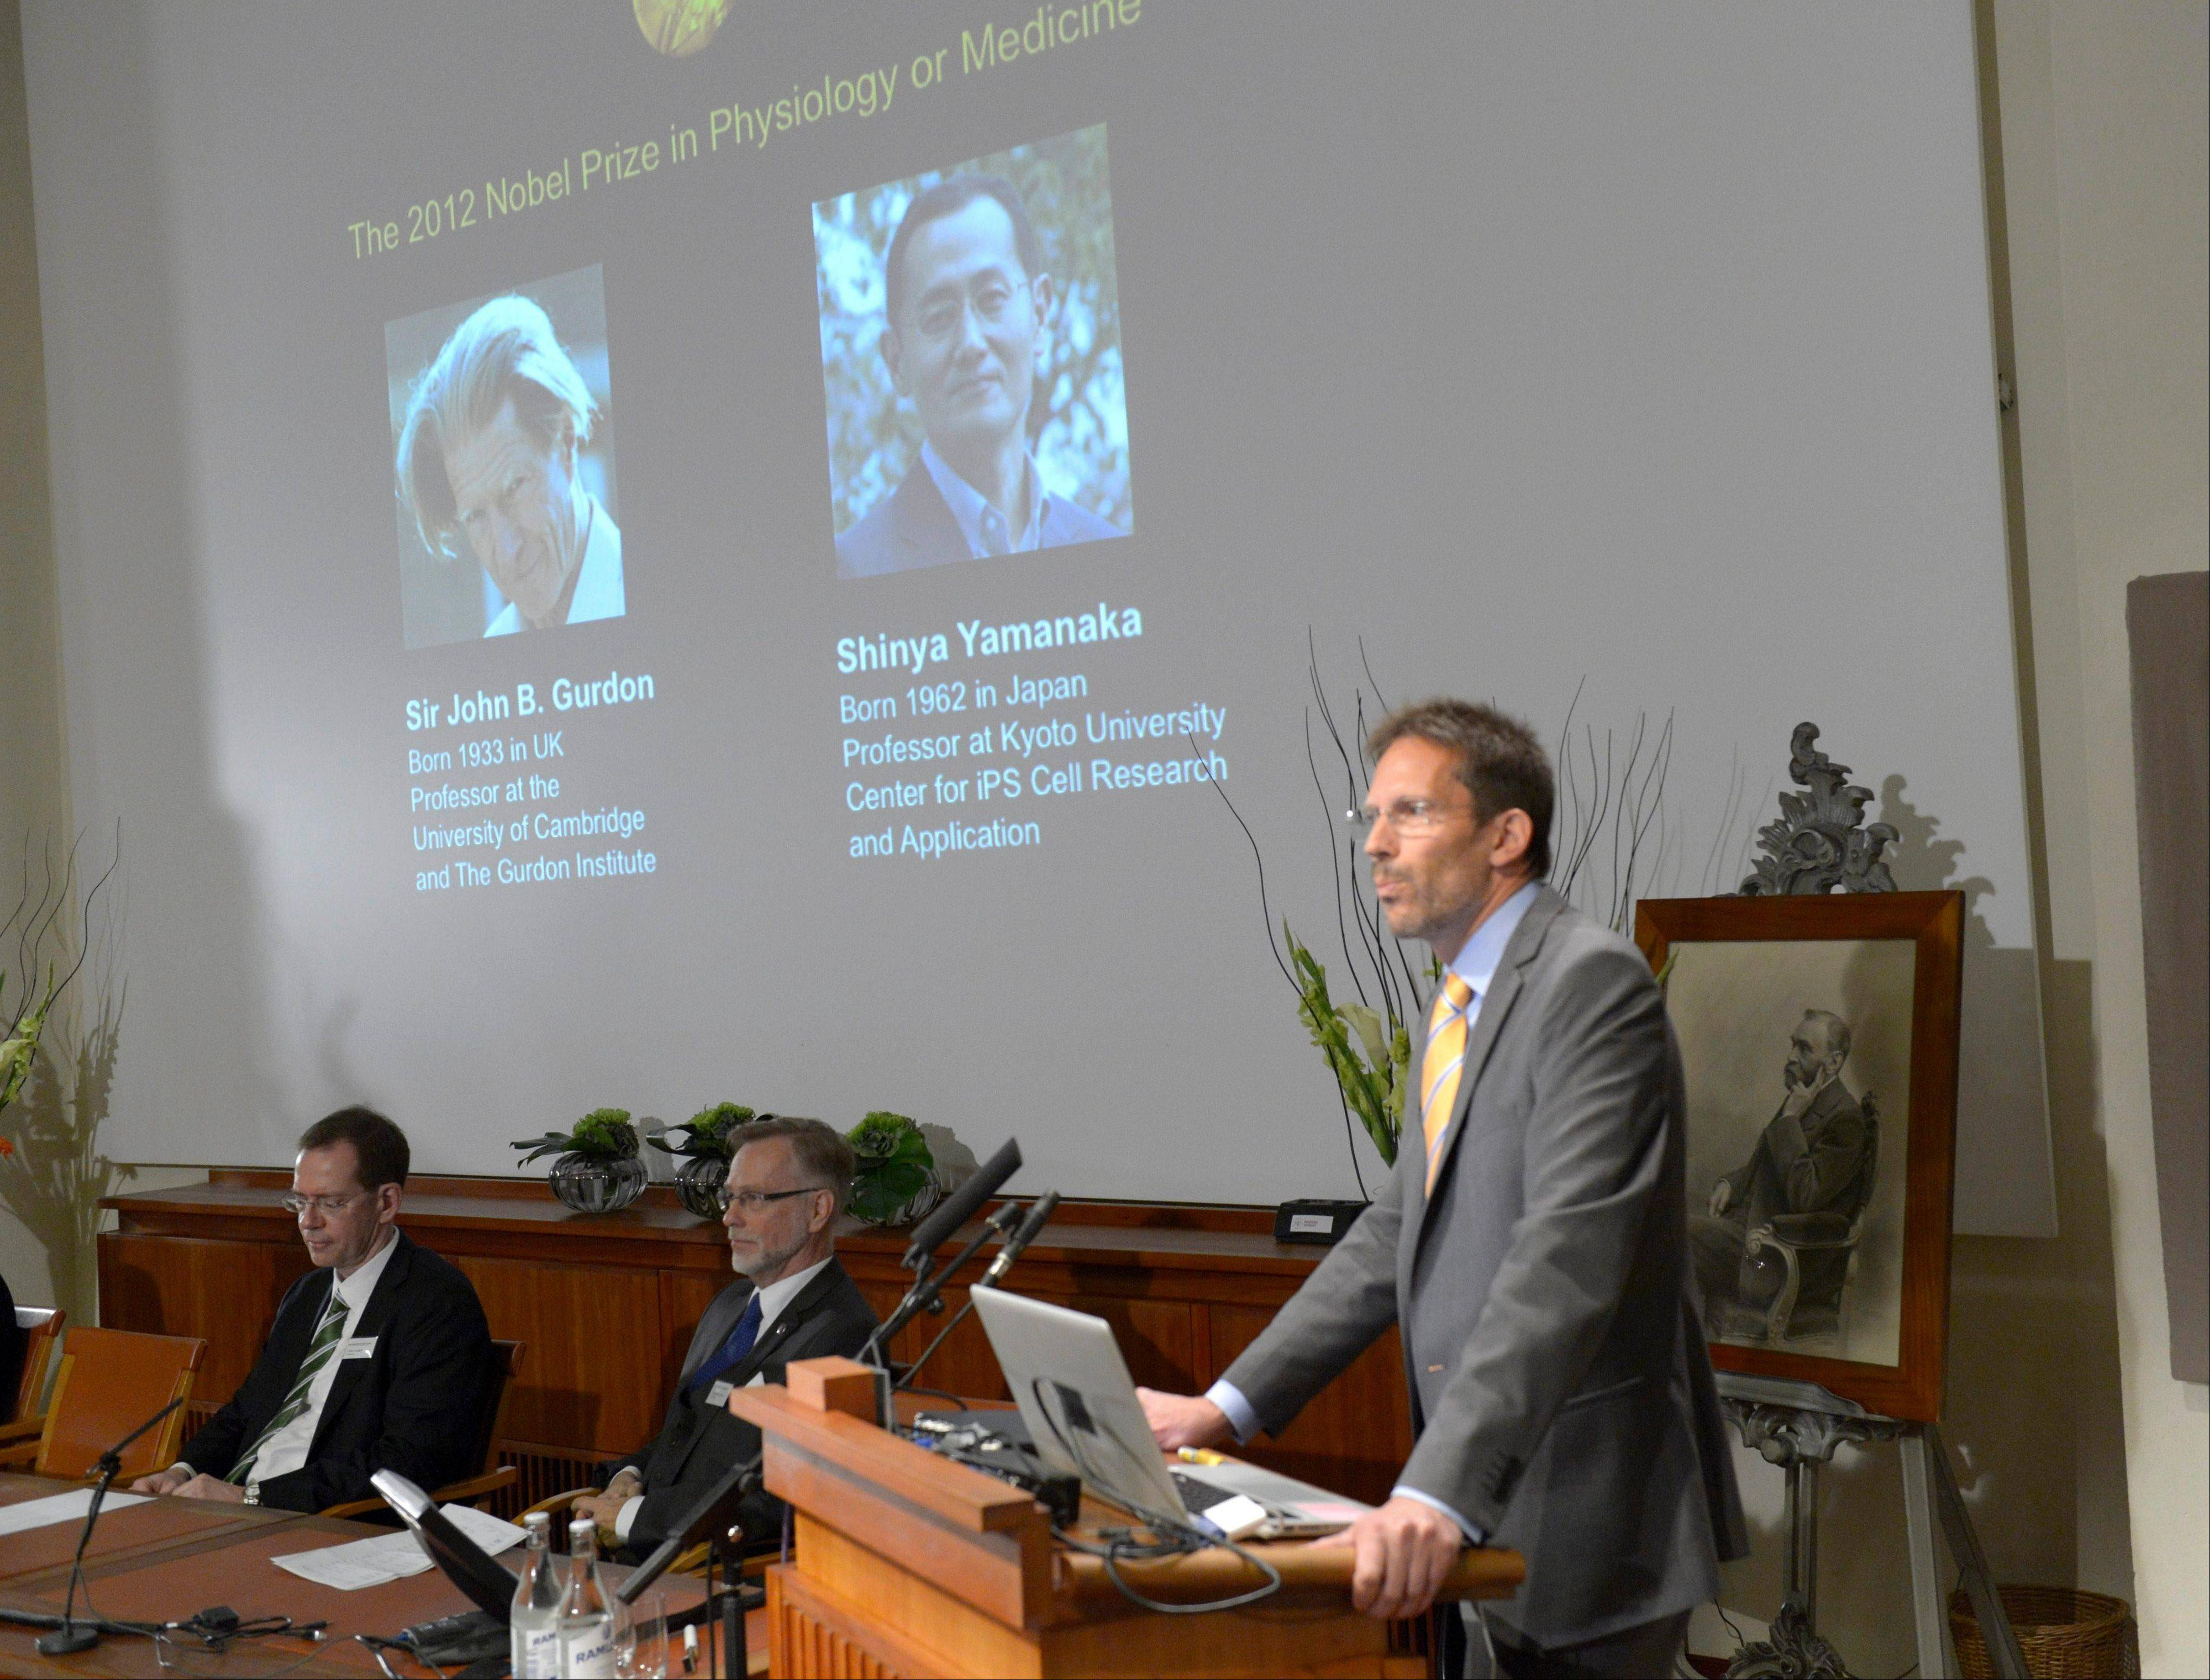 Thomas Perlmann of Karolinska Institute presents Sir John B. Gurdon of Britain and Shinya Yamanaka of Japan as winners of the 2012 Nobel Prize in medicine or physiology, in Stockholm, Monday.